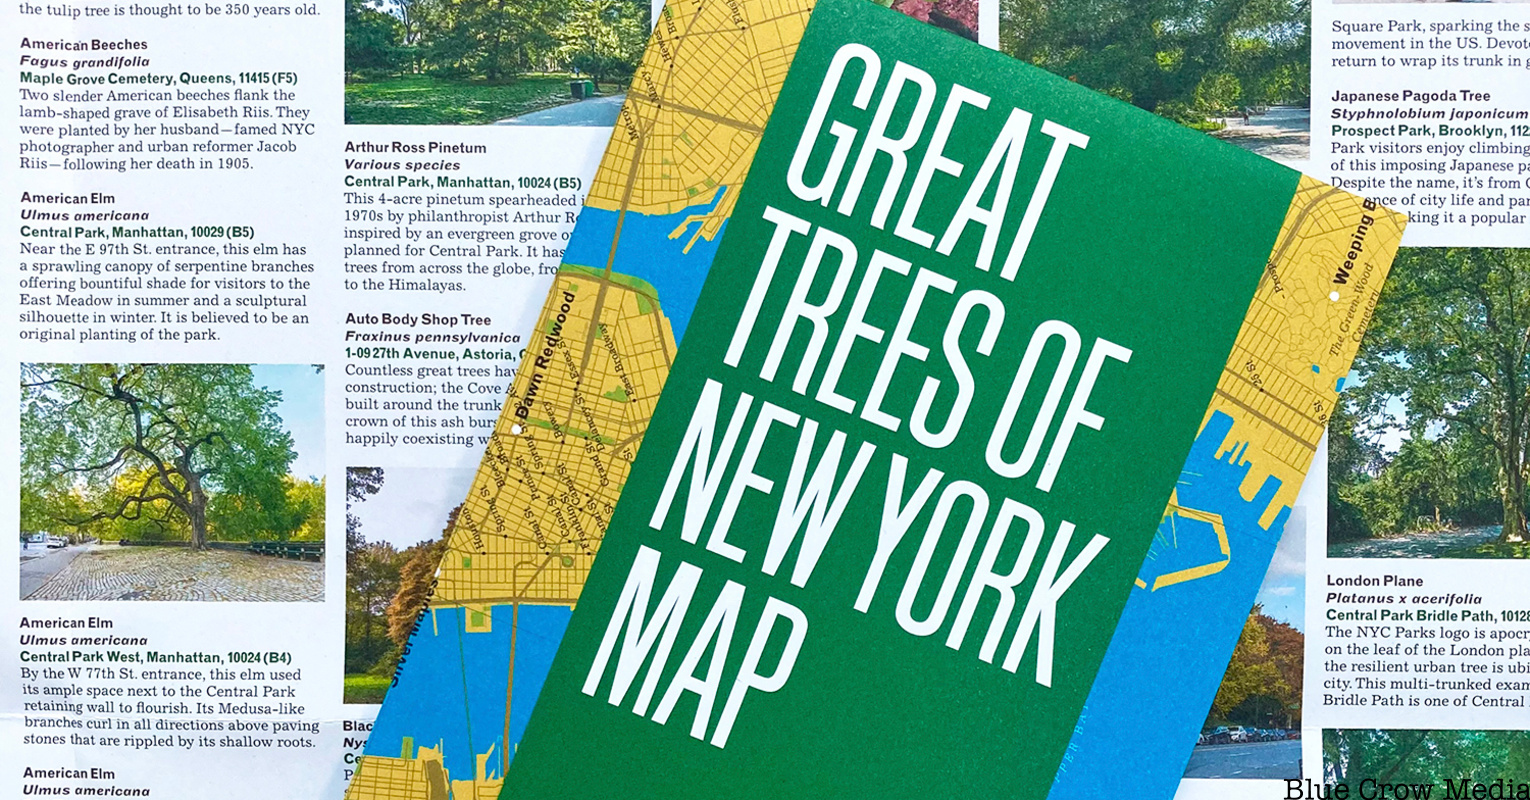 The Great Trees of New York Map